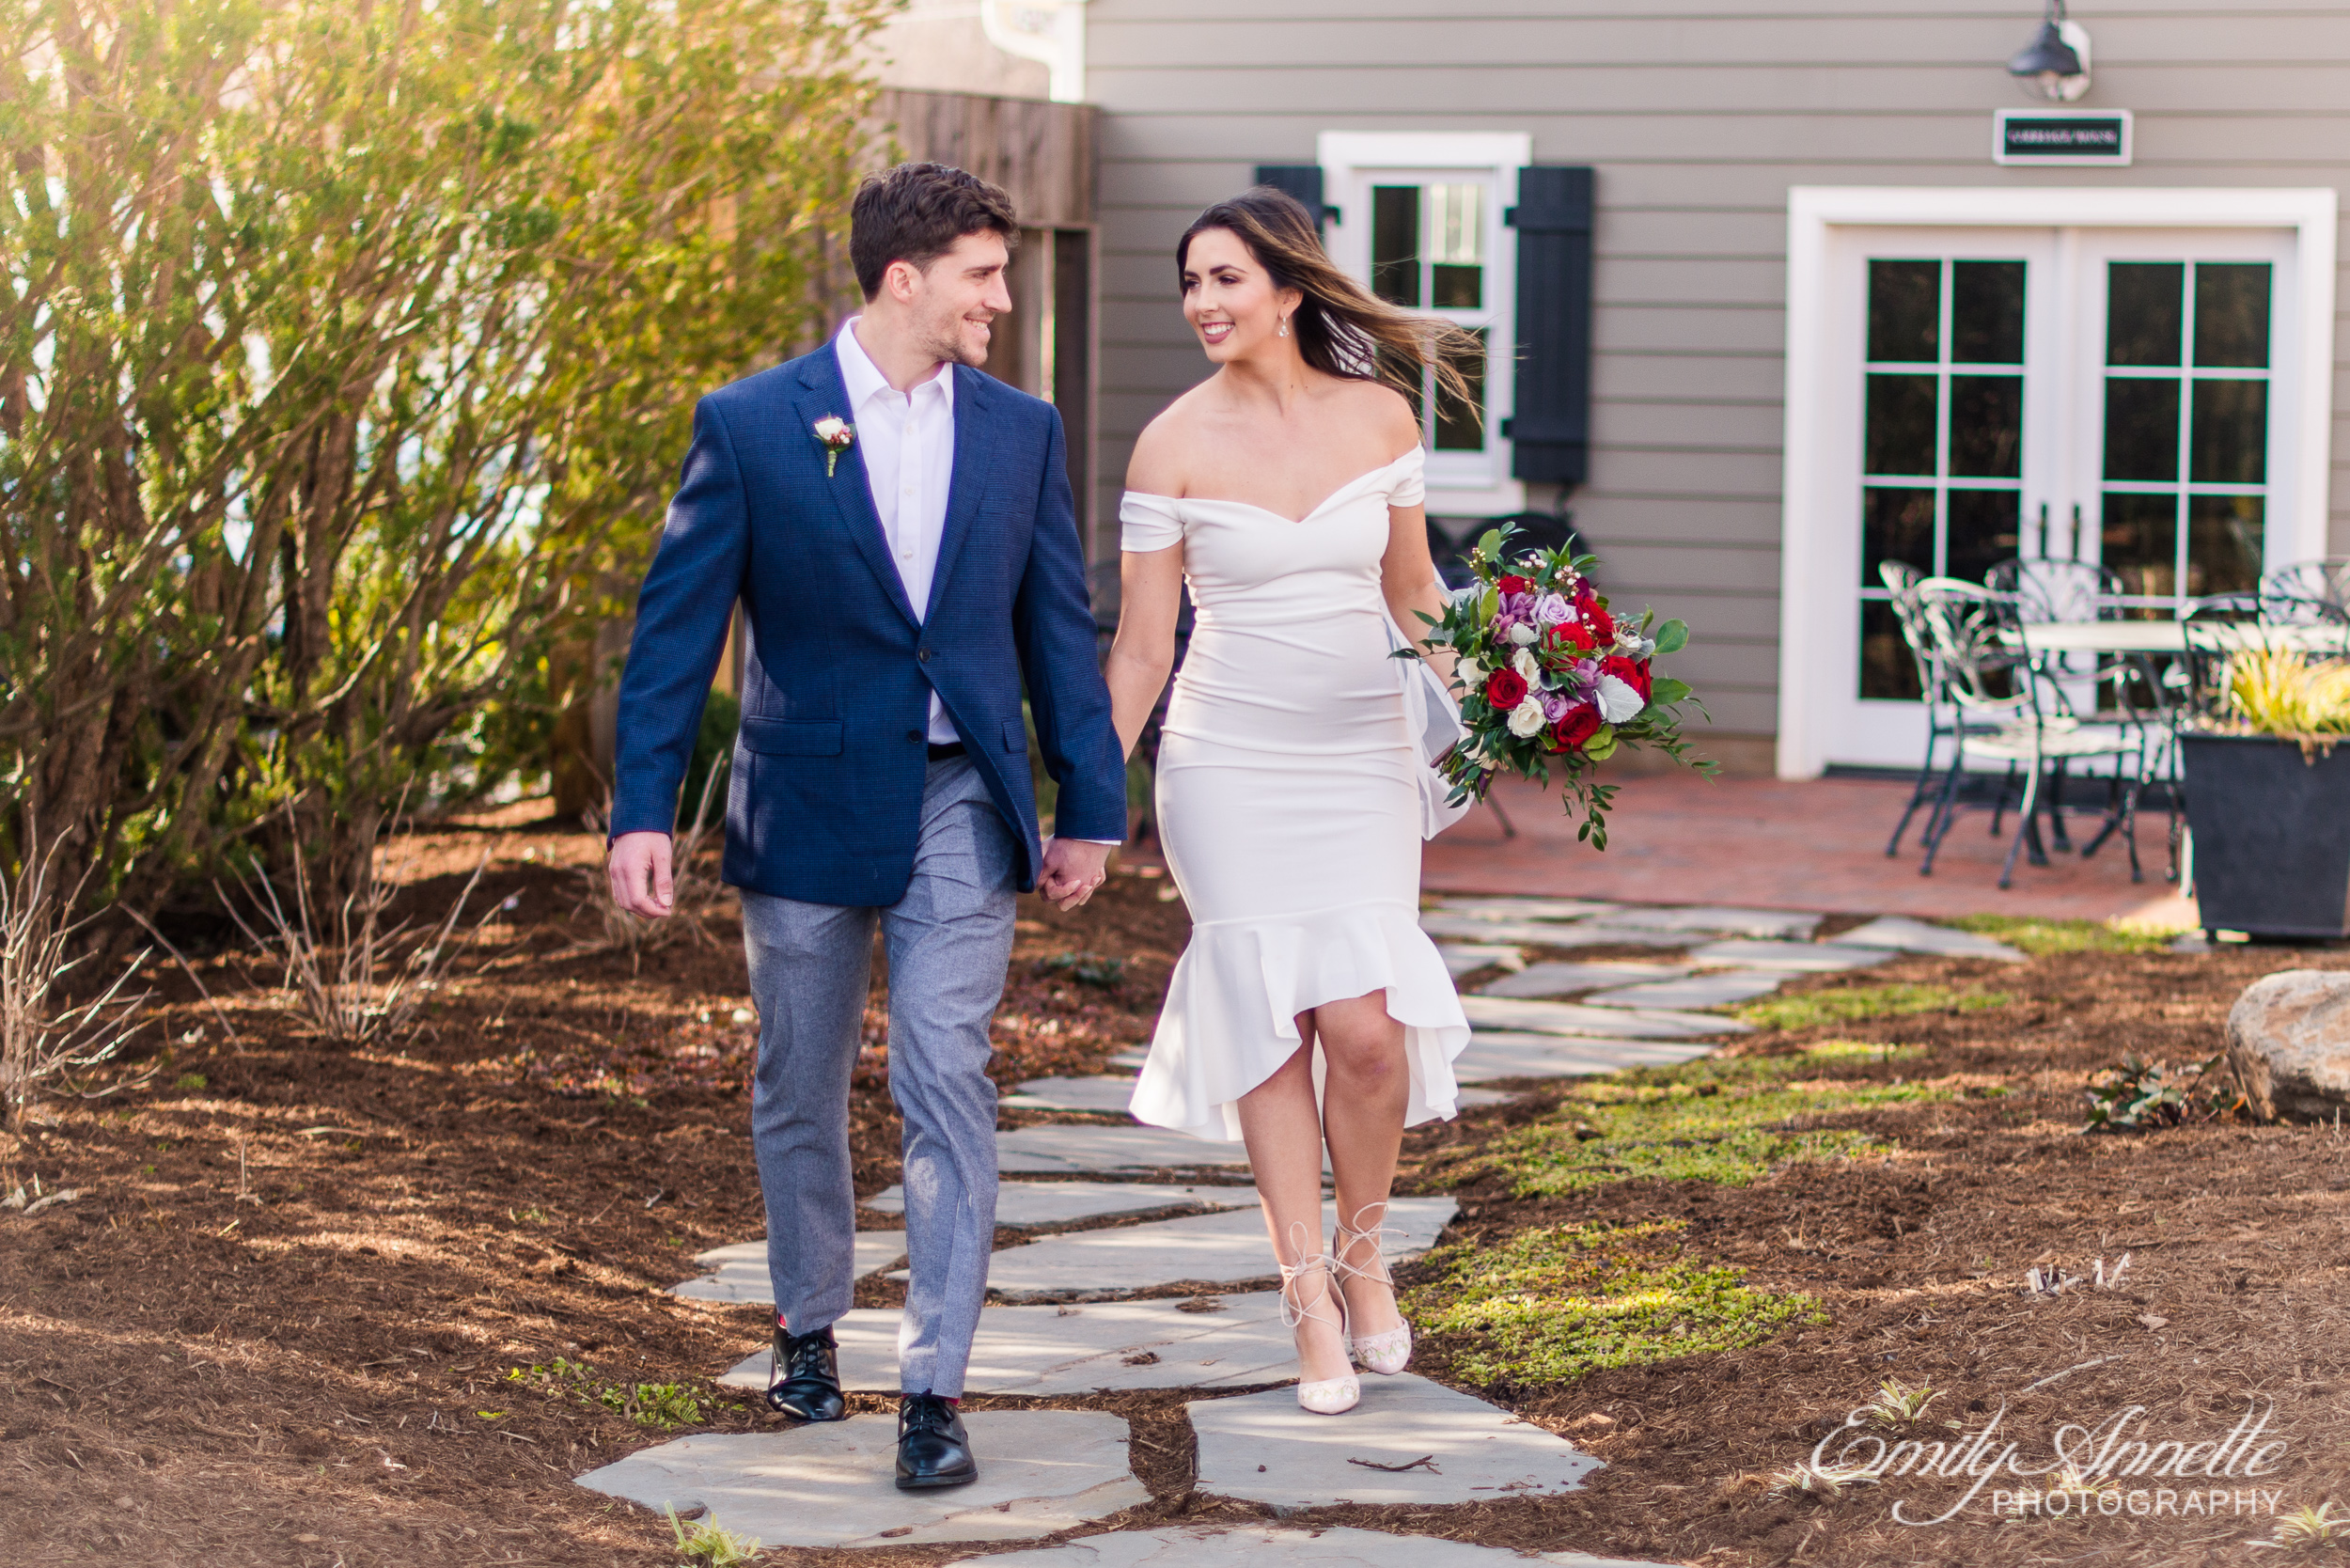 A bride and groom hold hands as they walk together on their wedding day at Fleetwood Farm Winery in Leesburg, Virginia